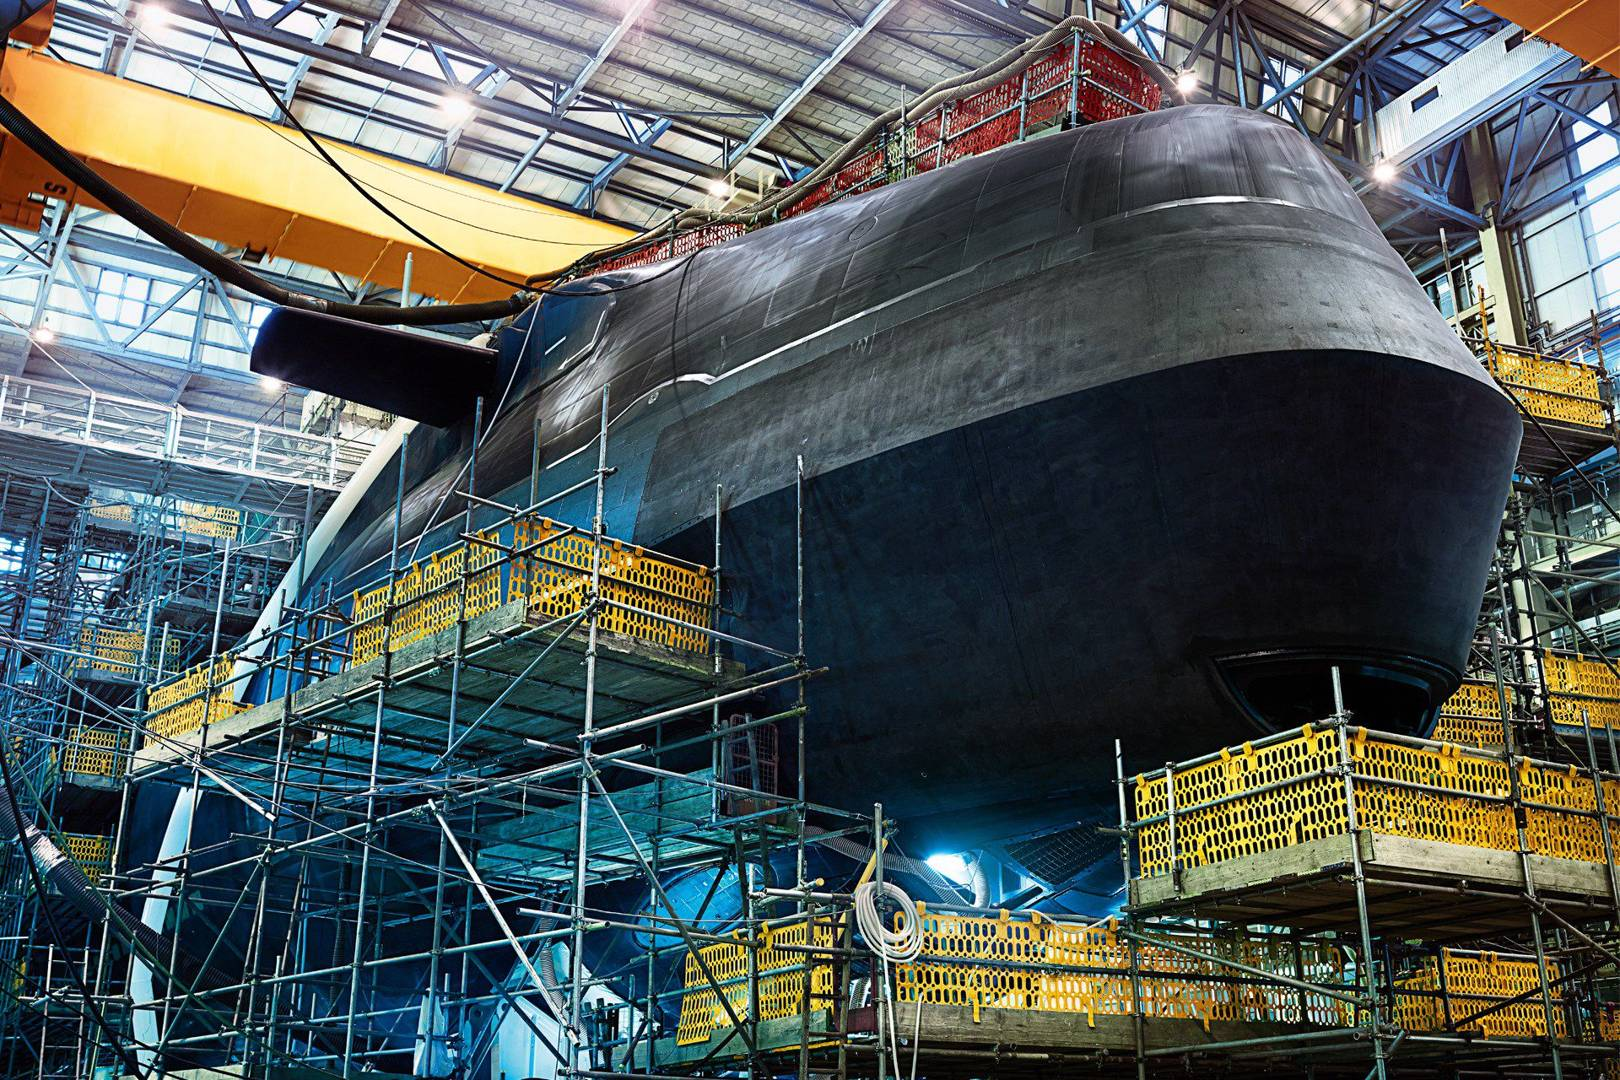 Nuclear submarine that can remain underwater for 25 years